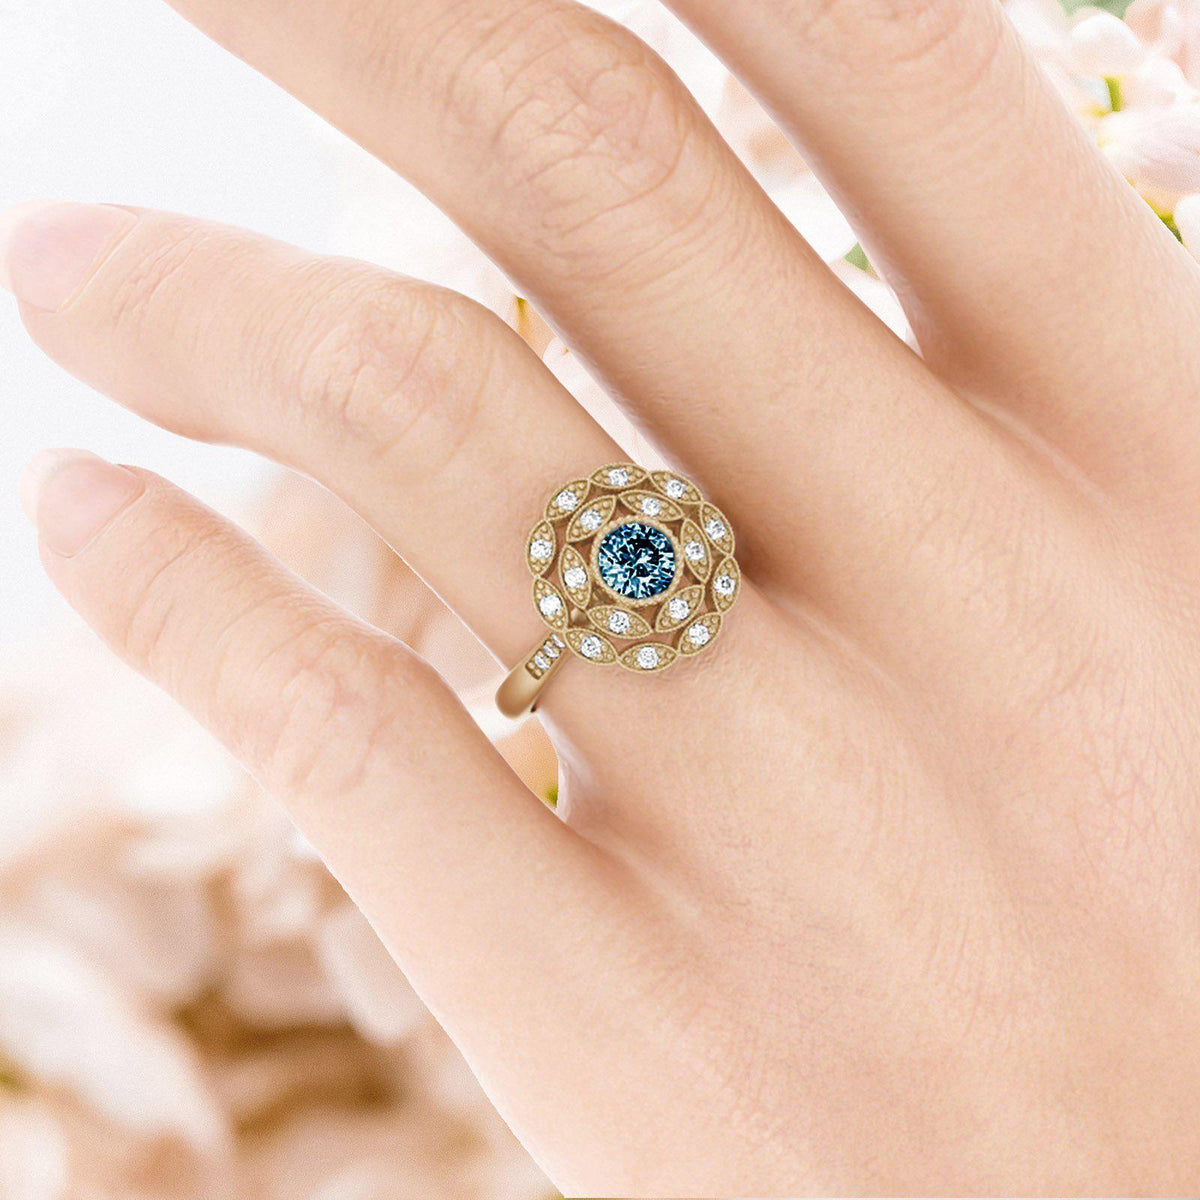 Rosabella Montana Sapphire Ring with Double Halo on womans hand